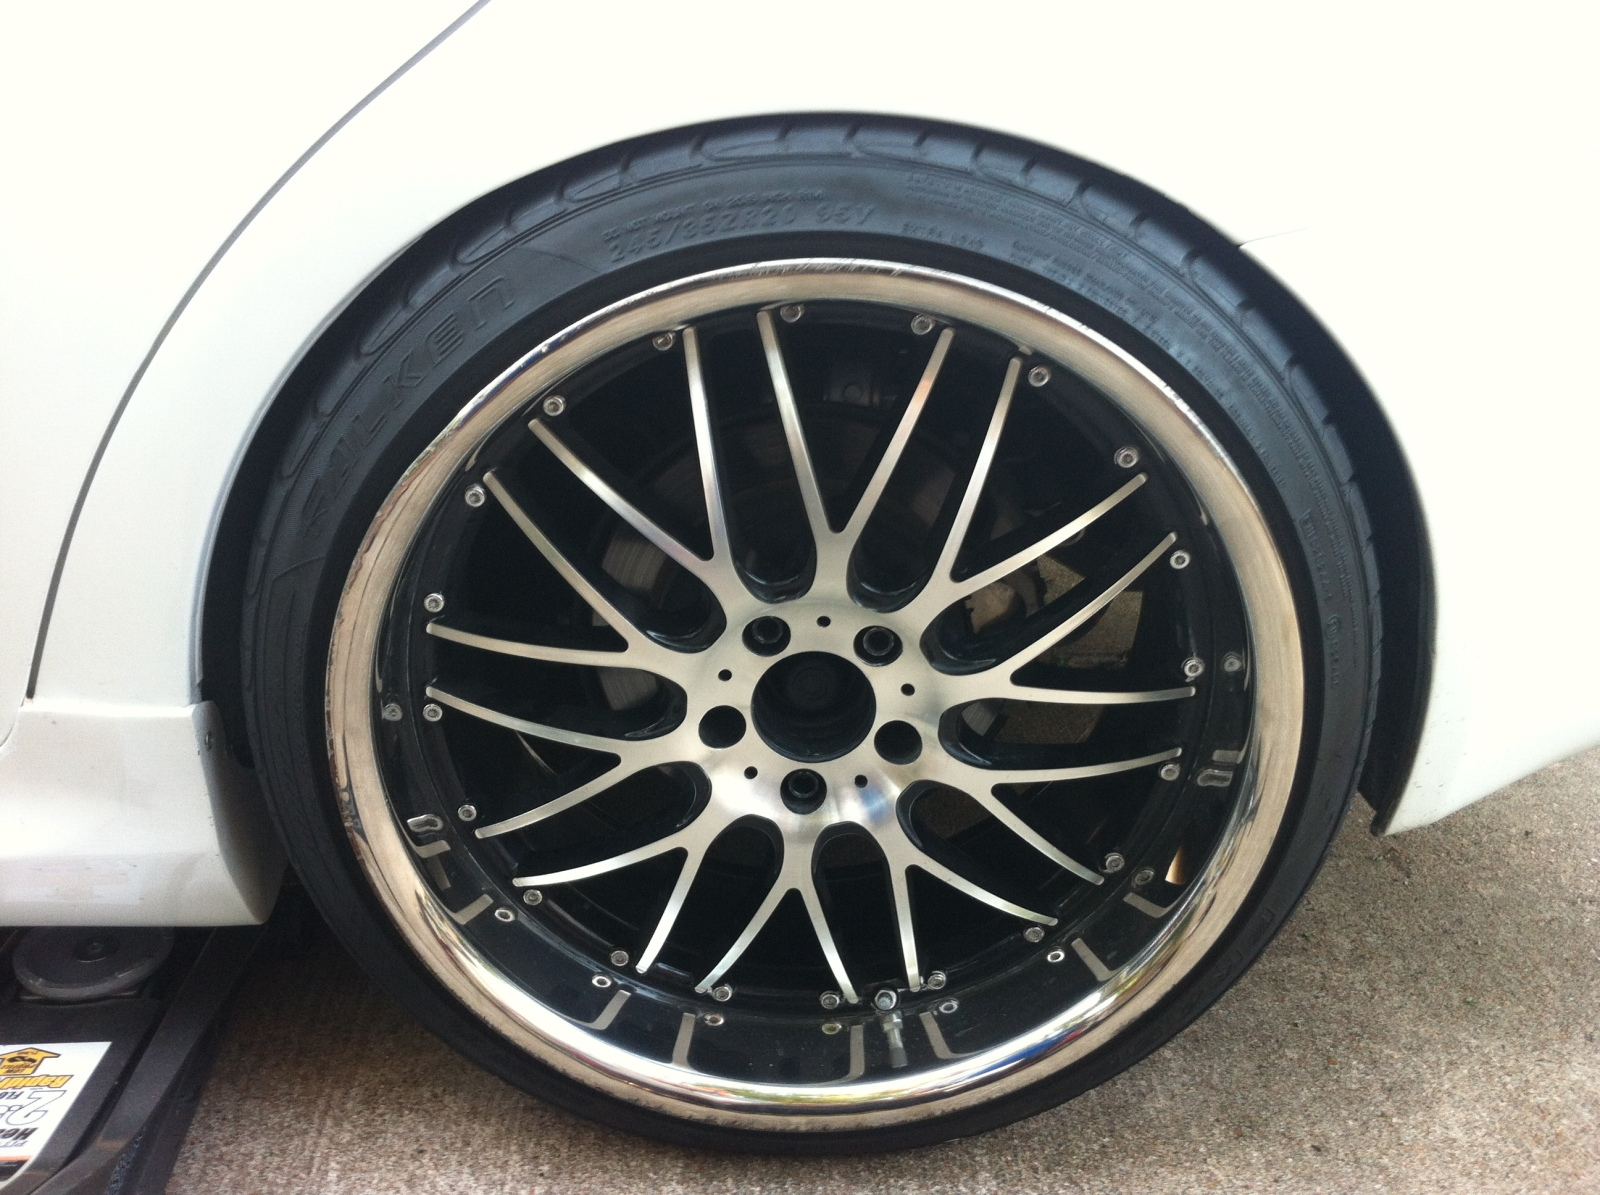 lexus is 250 custom wheels 20x10 5 et 25 tire size 245. Black Bedroom Furniture Sets. Home Design Ideas